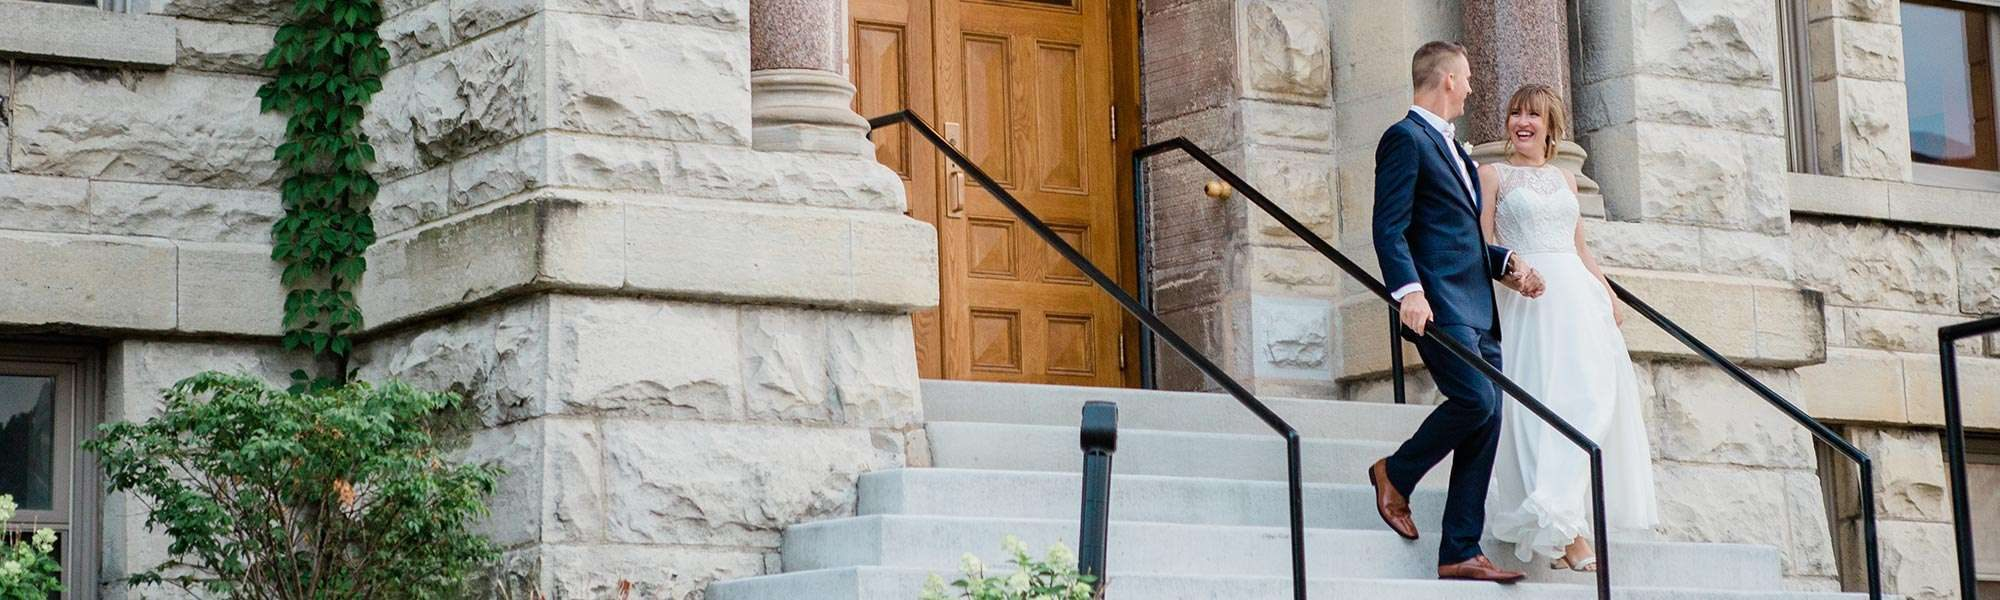 Haylie and Andy marry at Historic Courthouse 1893 in Waukesha